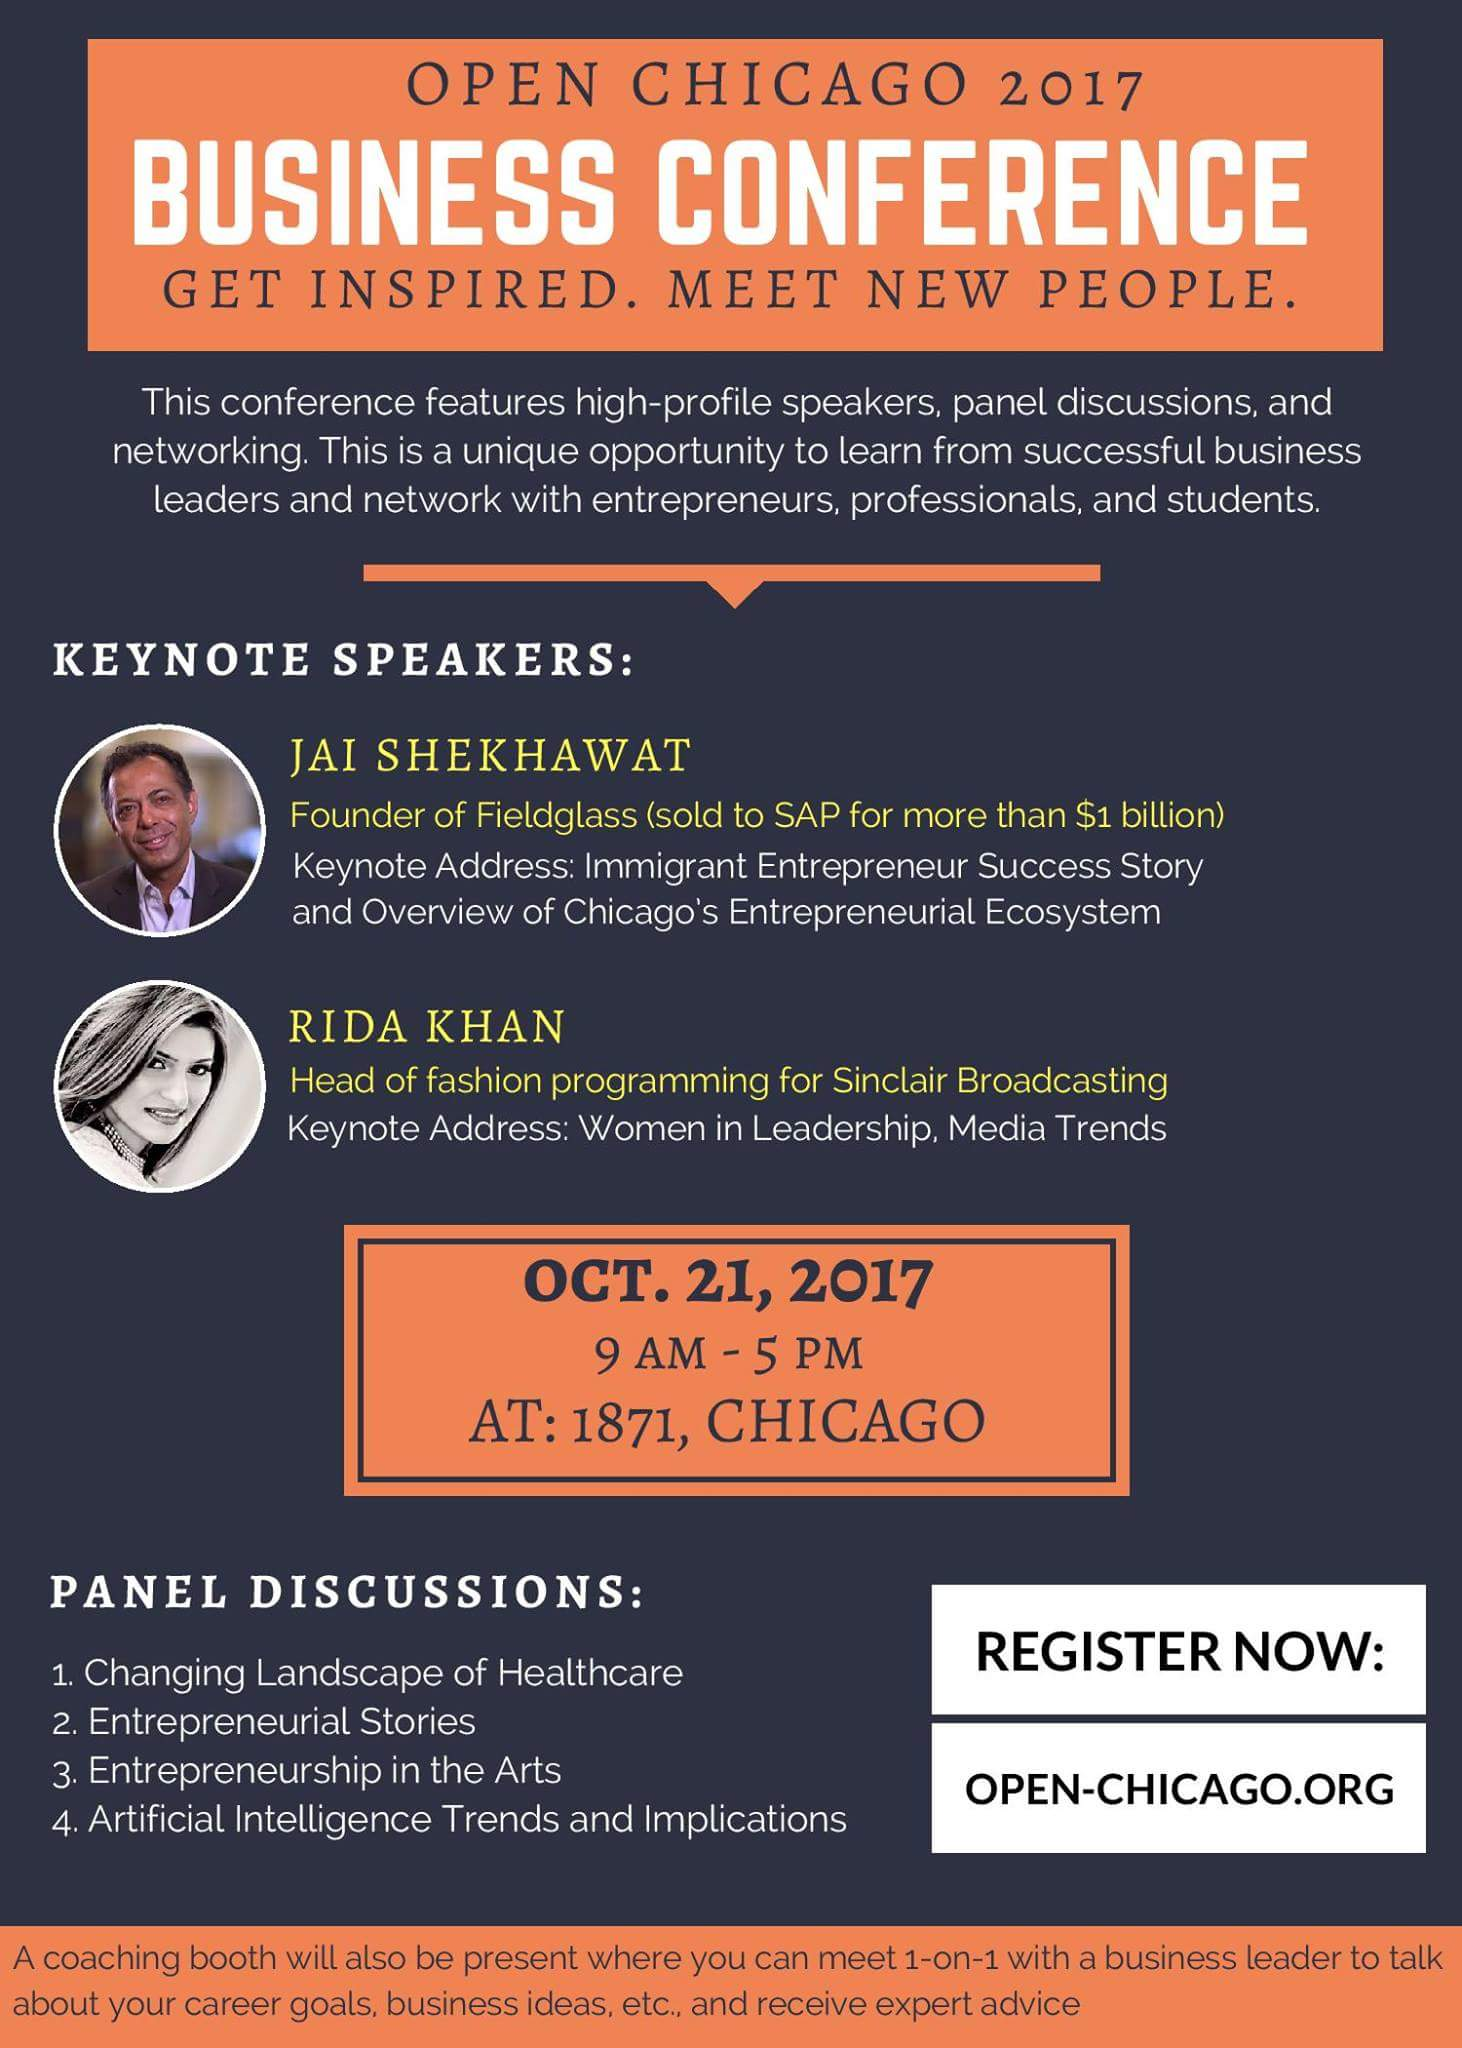 OPEN Chicago Annual Business Conference